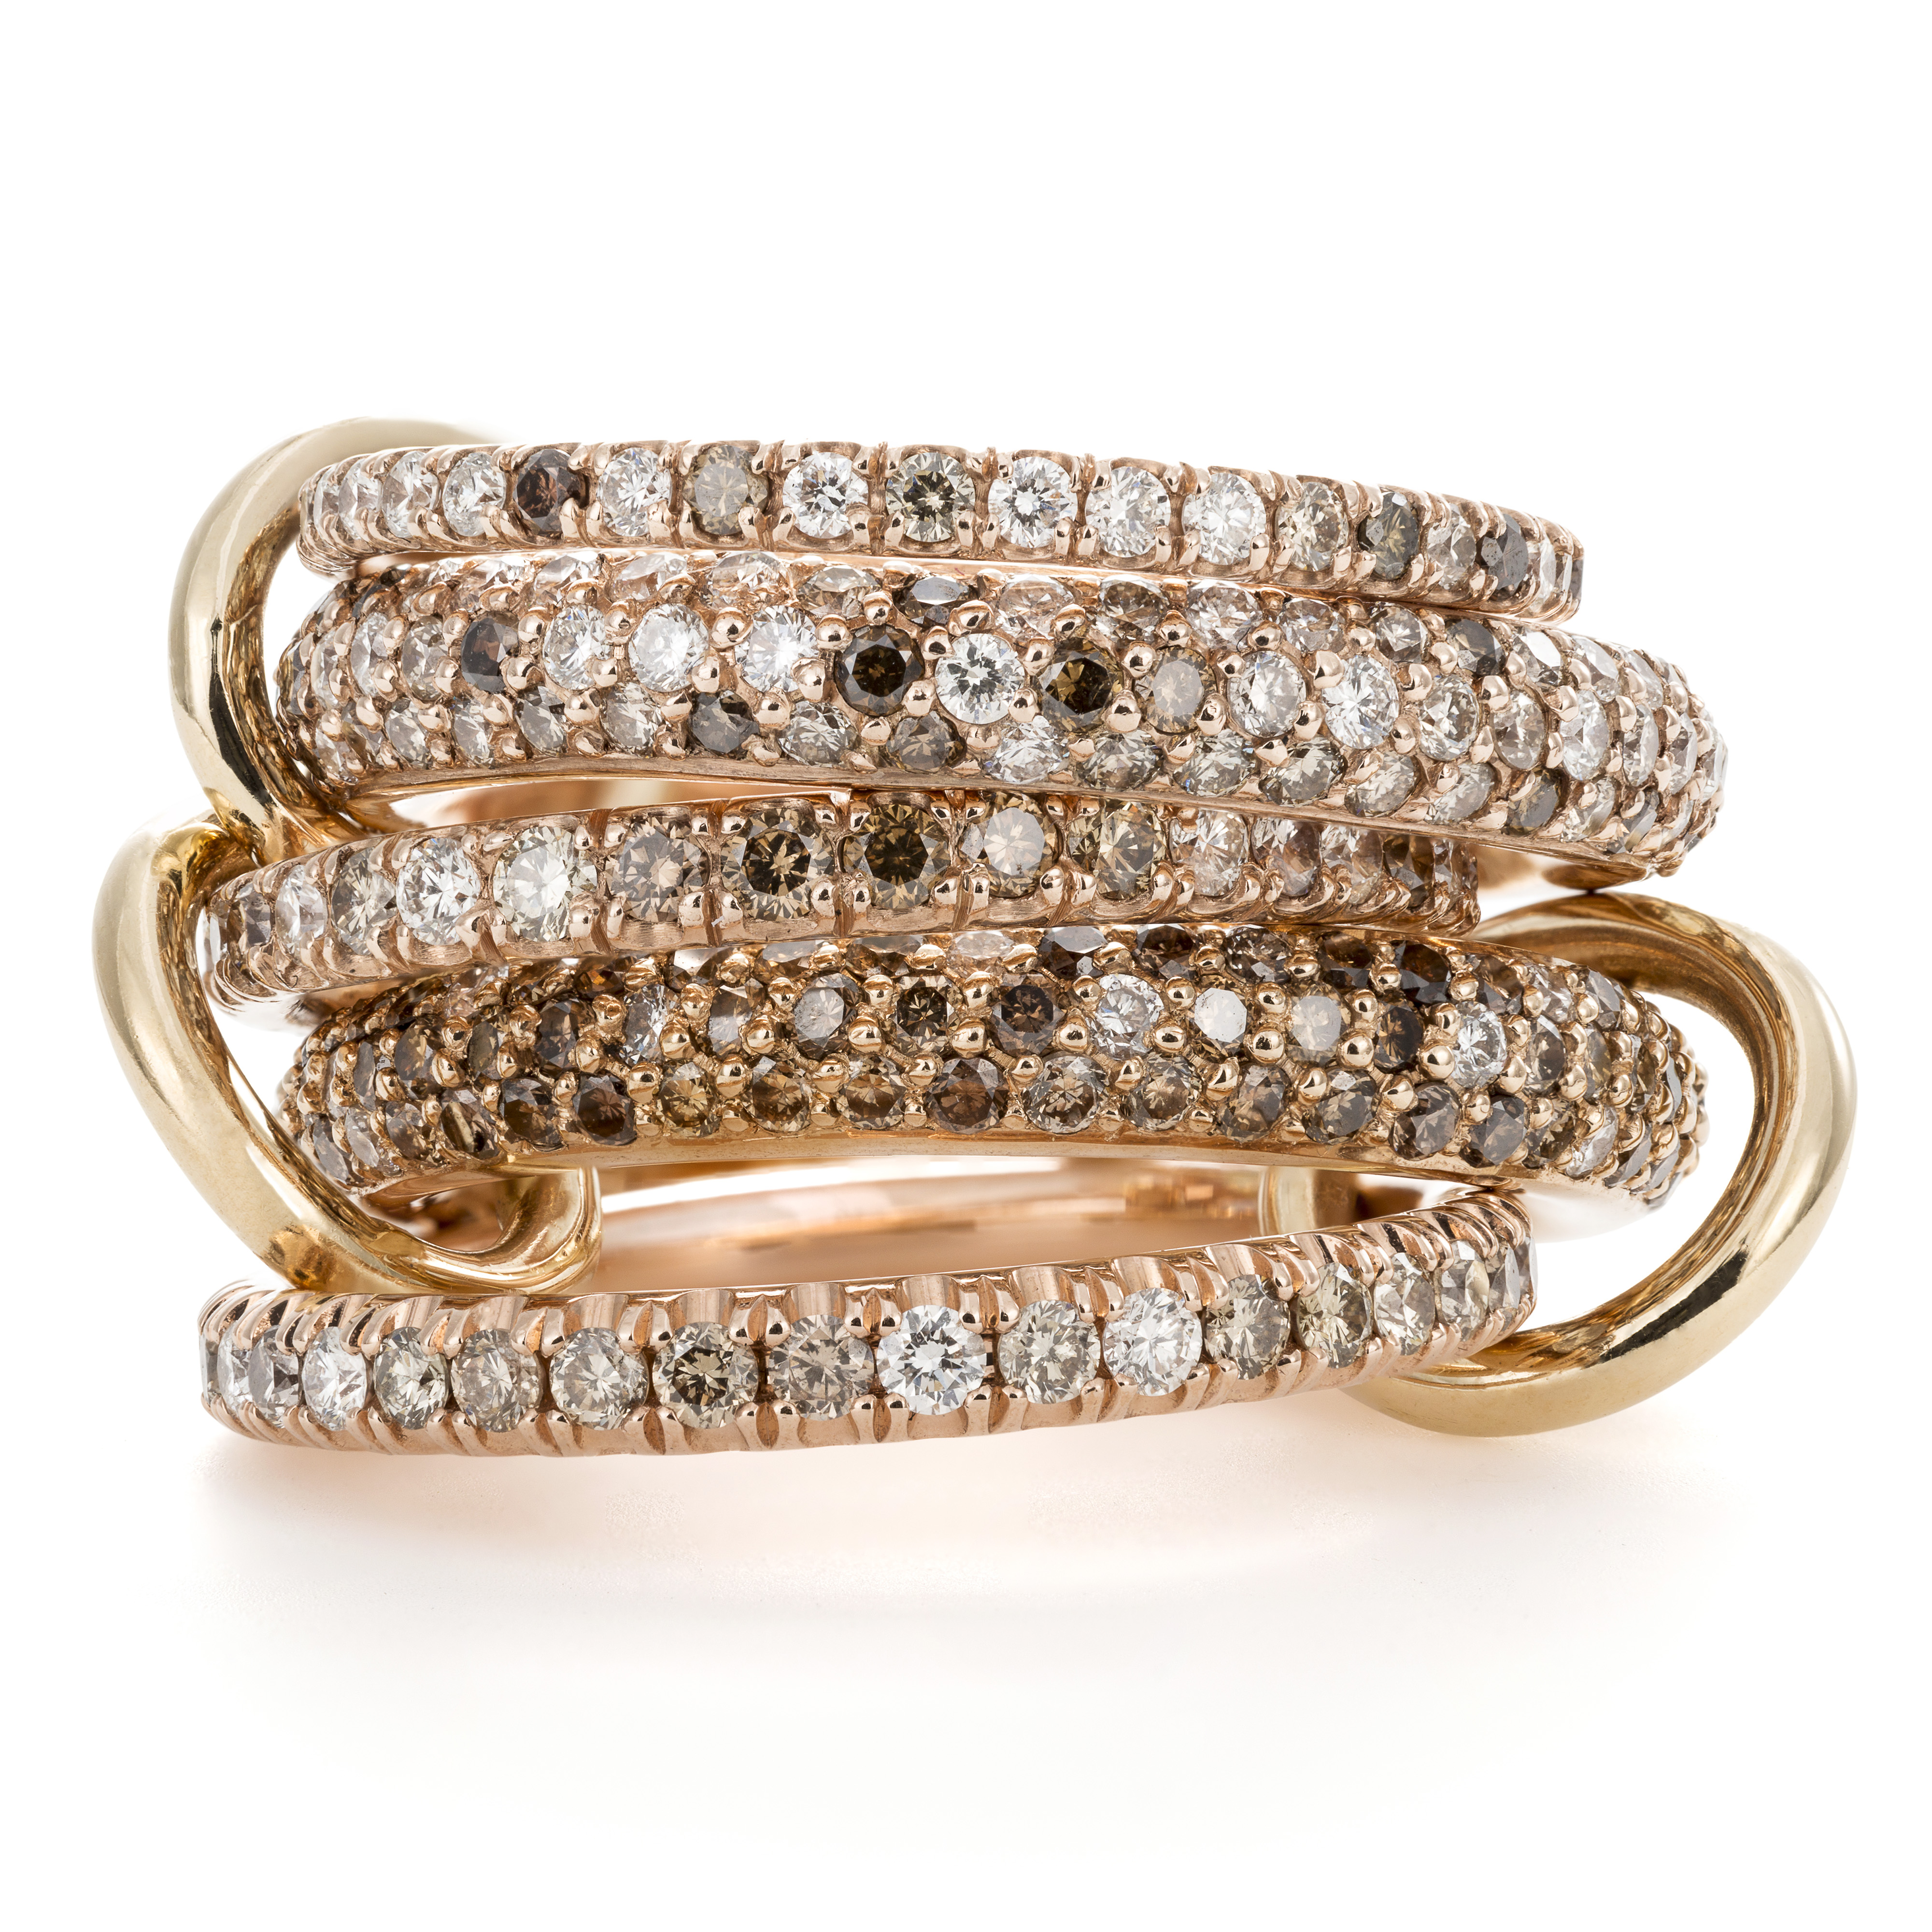 Spinelli Kilcollin Vela ring mounted on pink gold with diamonds